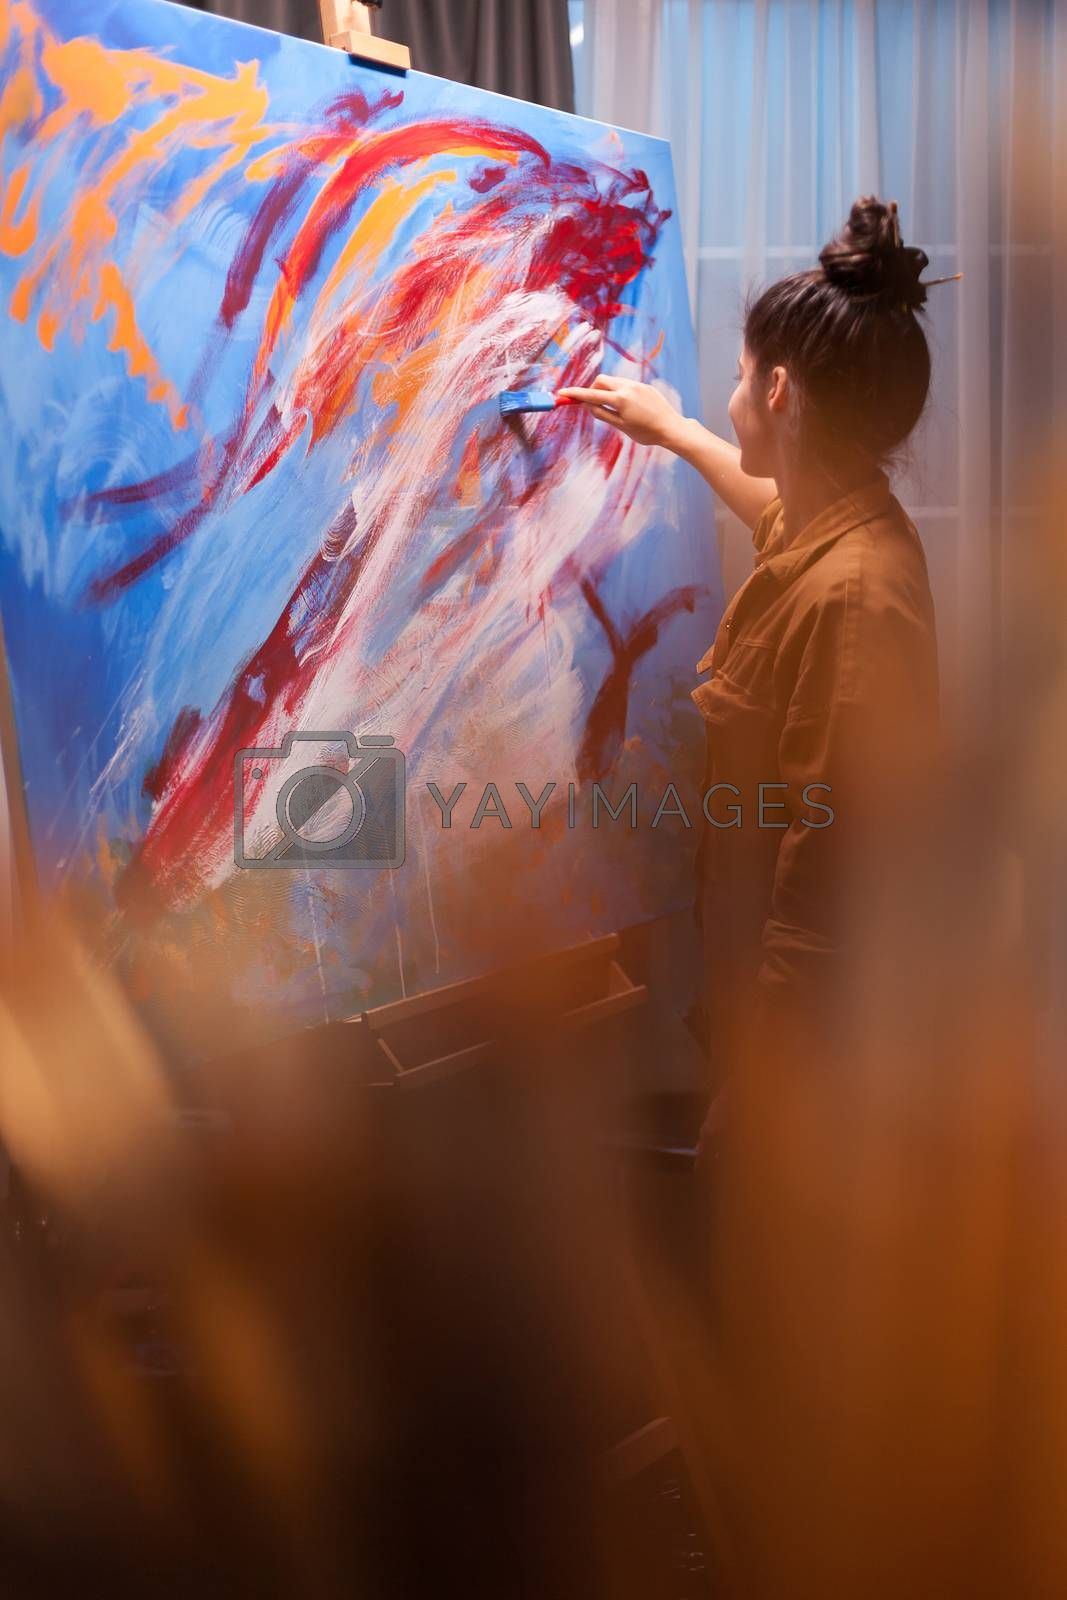 Woman in art studio painting on canvas. Colorful painting. Modern artwork paint on canvas, creative, contemporary and successful fine art artist drawing masterpiece